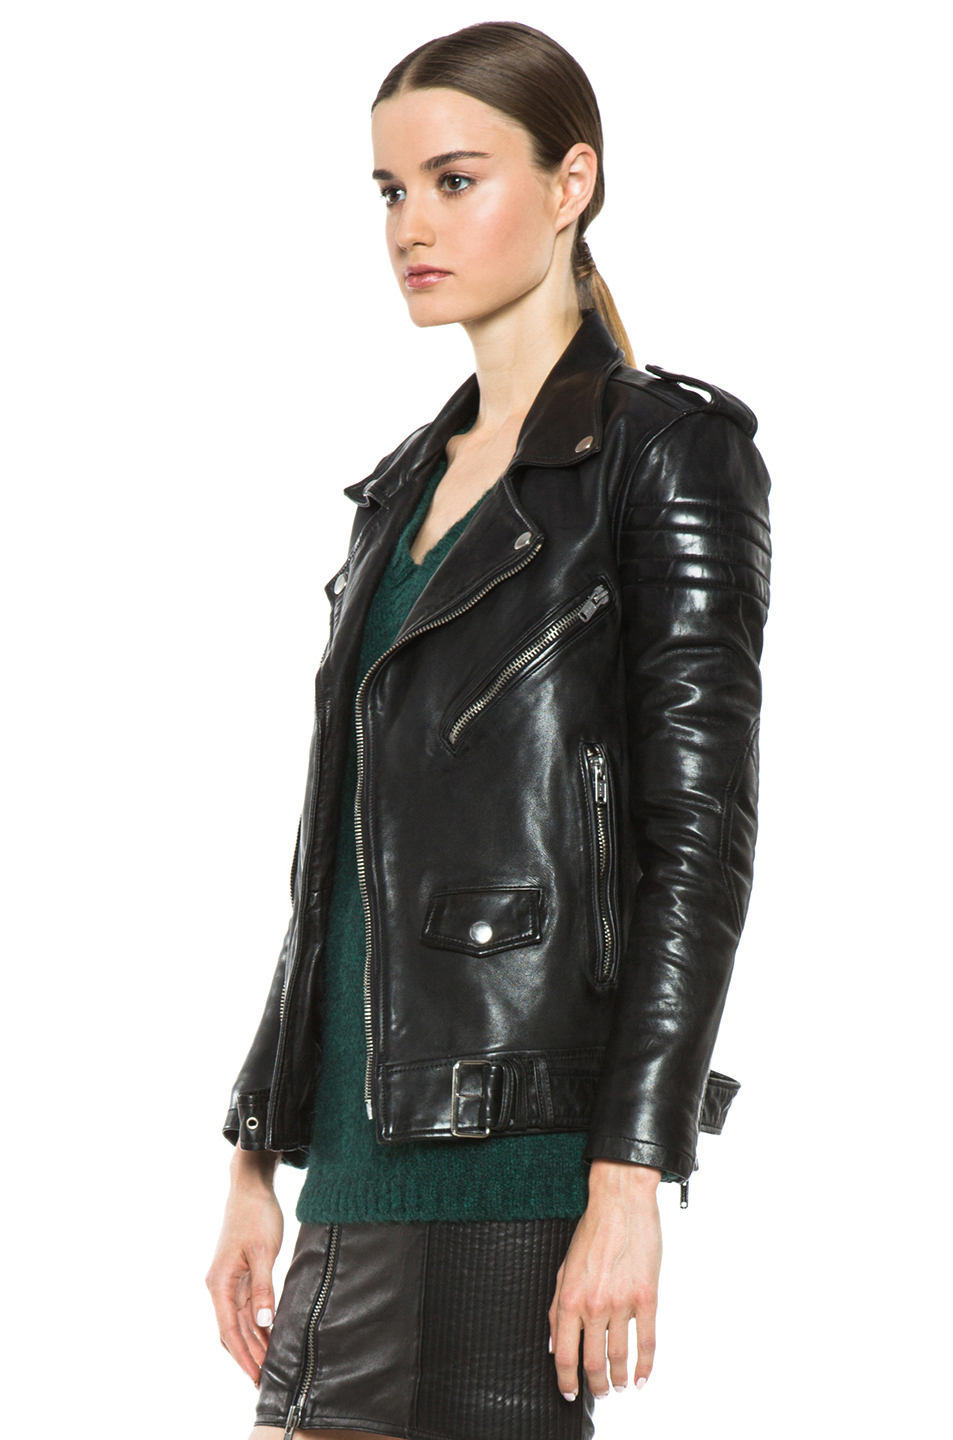 Lyst - Blk Dnm Leather Motorcycle Jacket In Black-3100